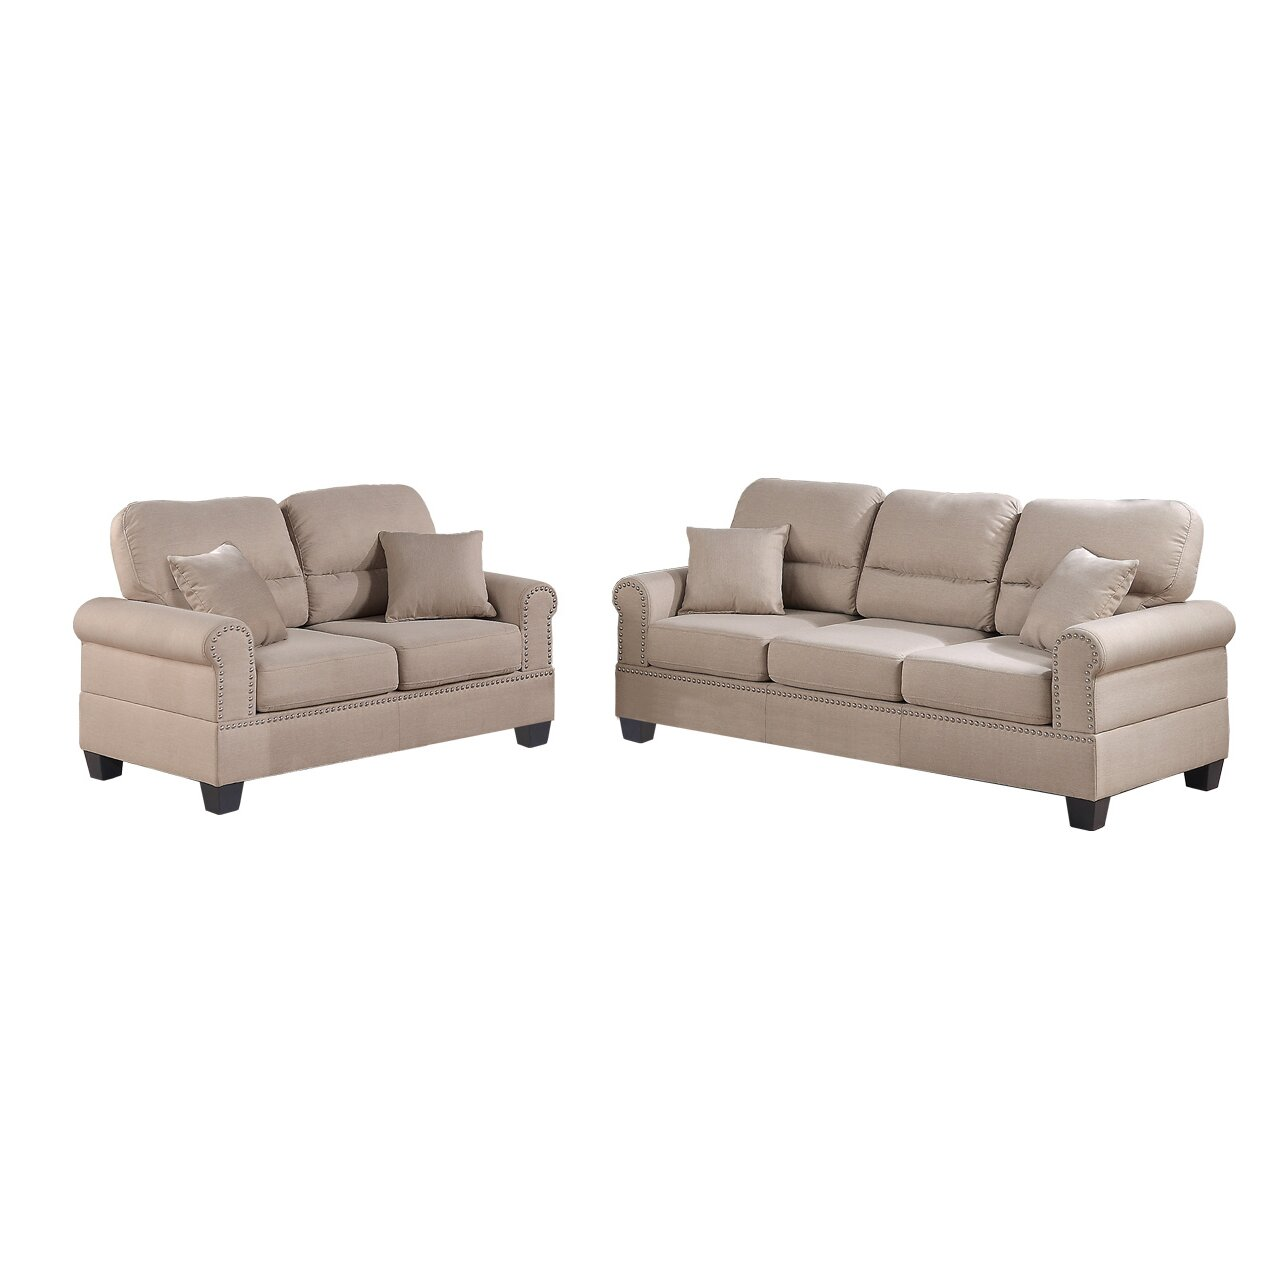 Poundex Bobkona Shelton Sofa And Loveseat Set Reviews